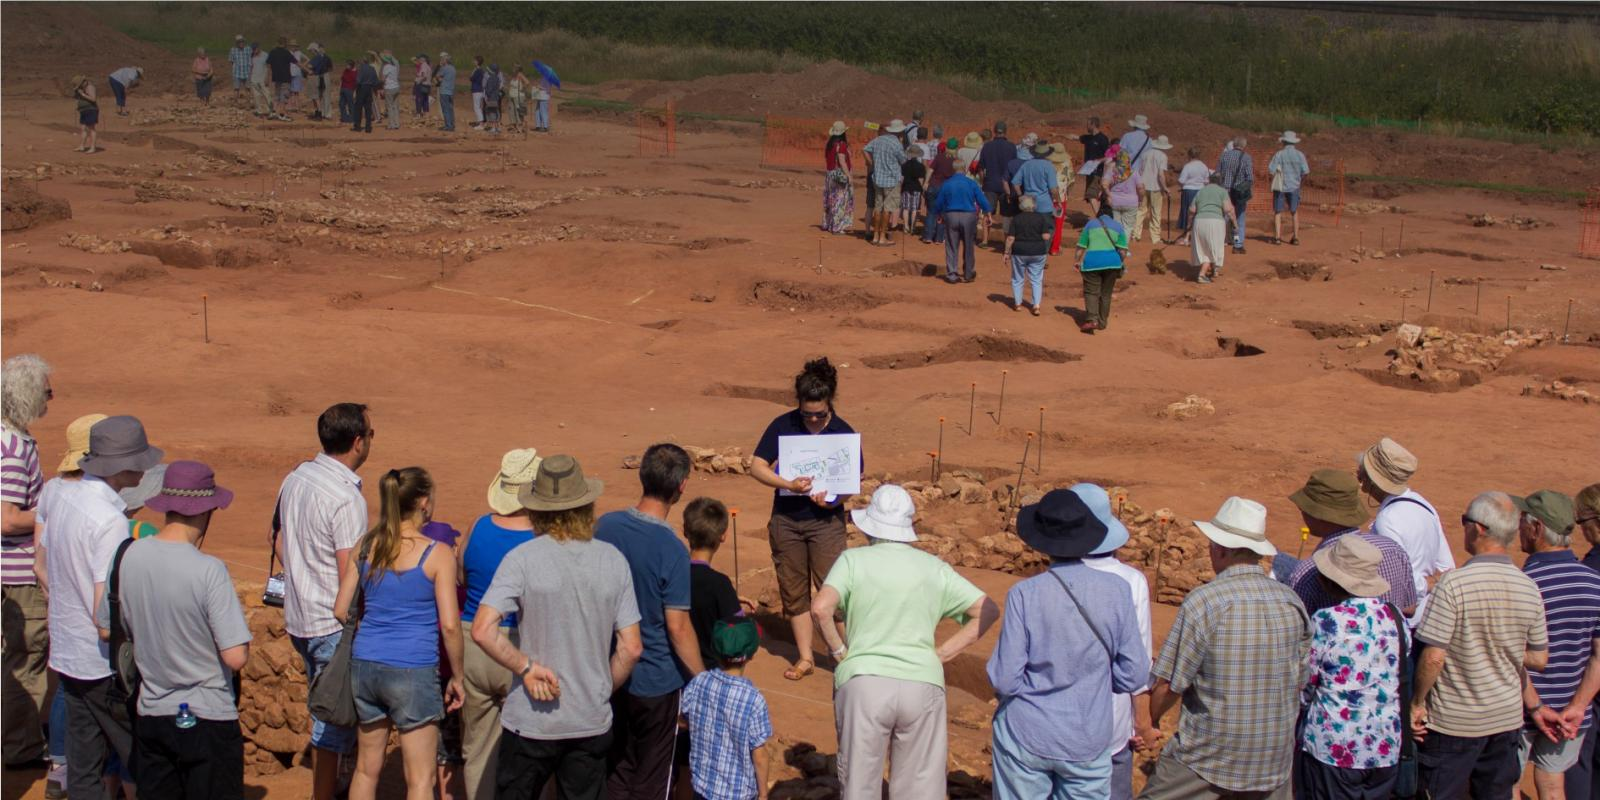 Open day on site to engage the local community in archaeology